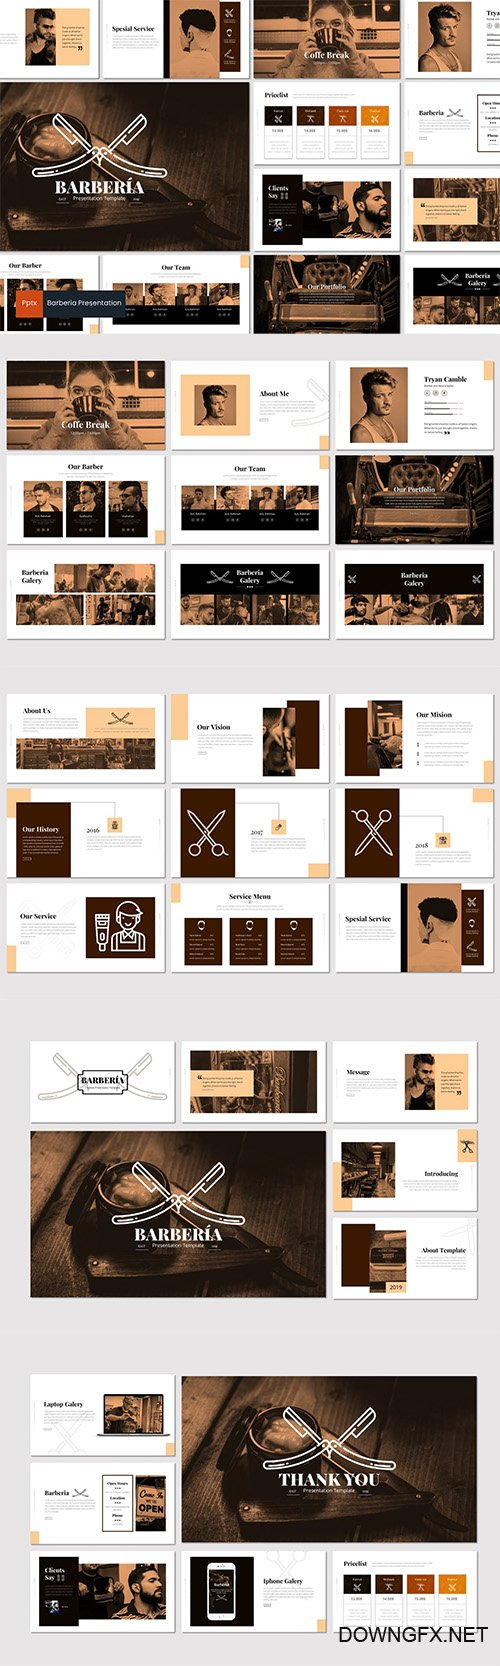 Barberia - Powerpoint Keynote and Google Slides Templates